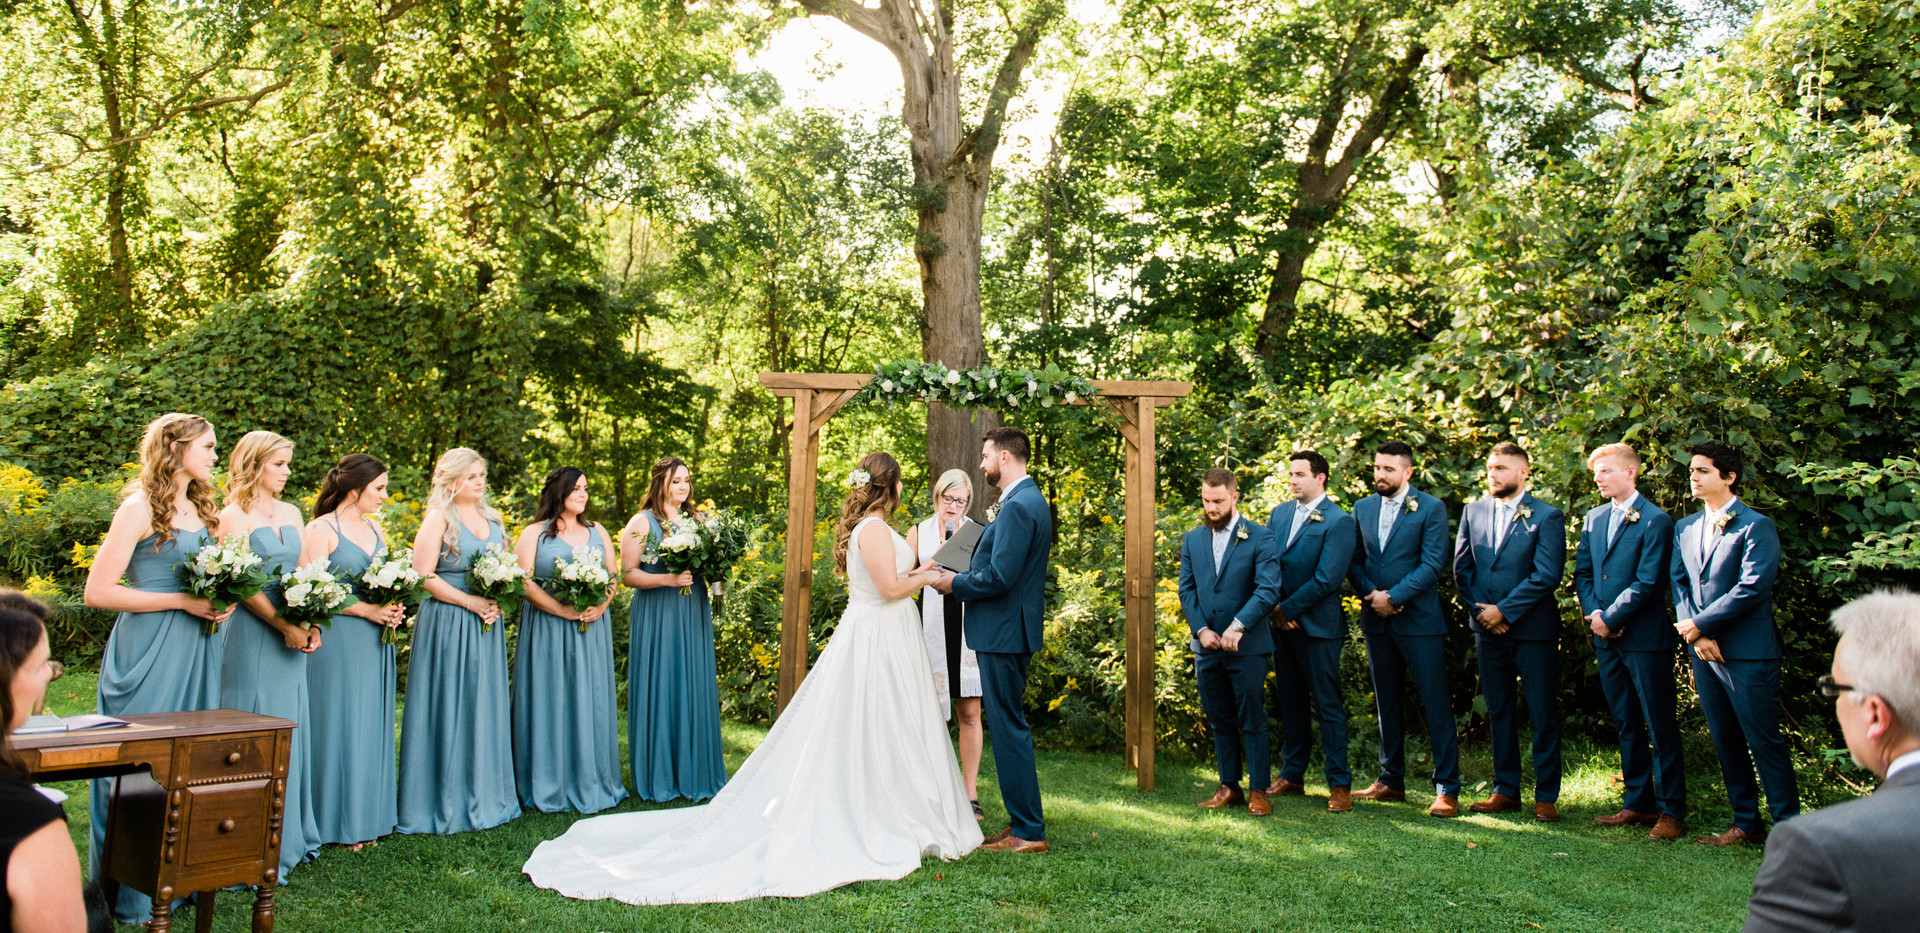 wide shot of whole wedding party standing at arbour for outdoor forest ceremony, bridesmaids wearing dusty blue dresses, groomsmen in dark navy blue suits